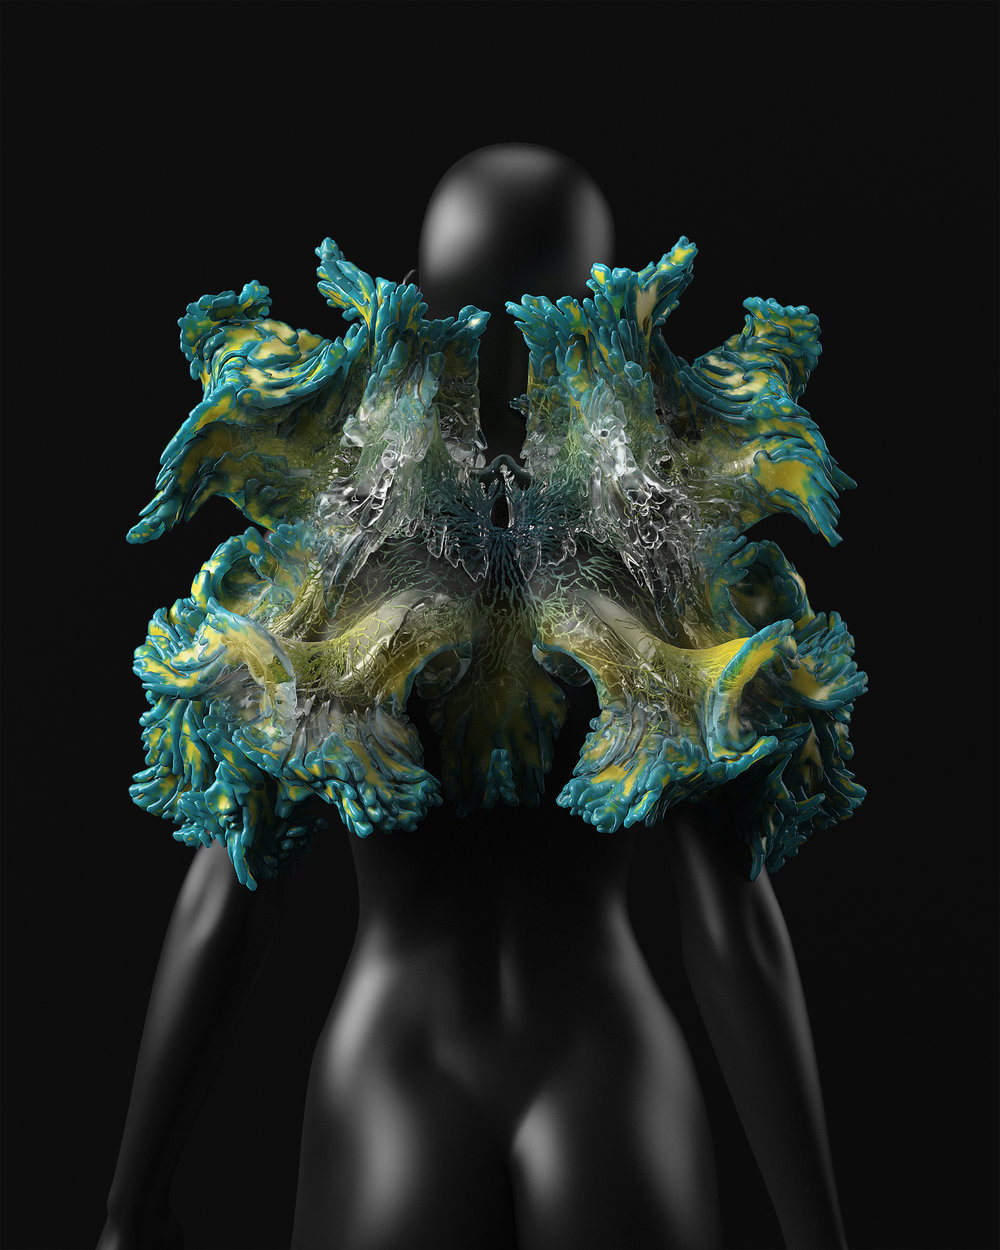 Photo Credit: Neri Oxman